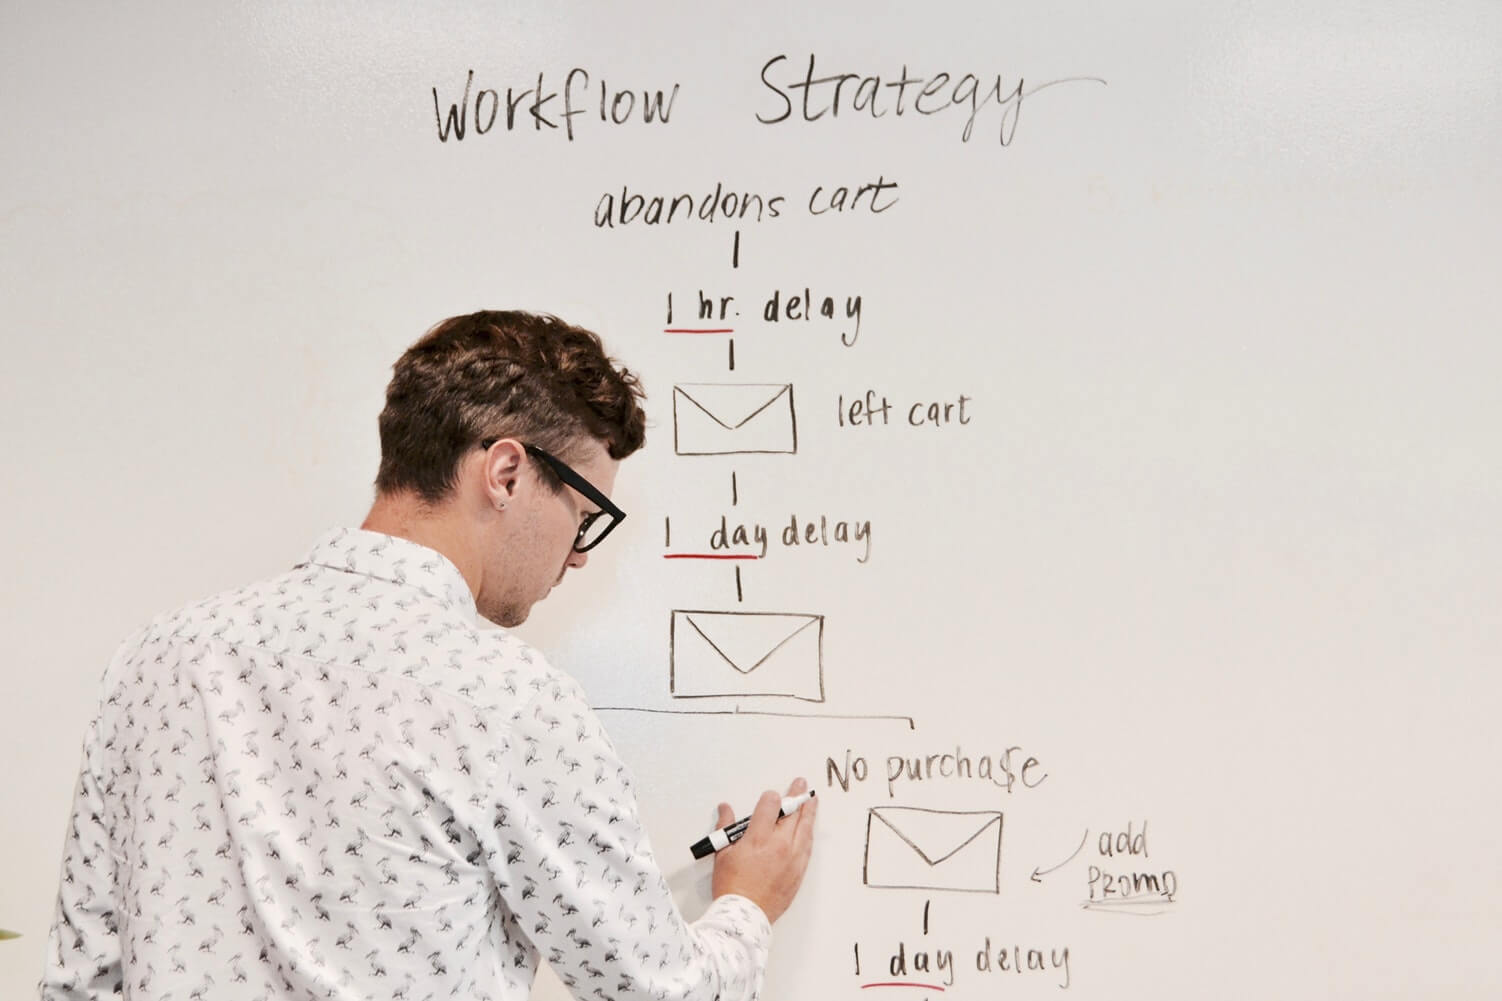 workflow strategy drawn on a white board